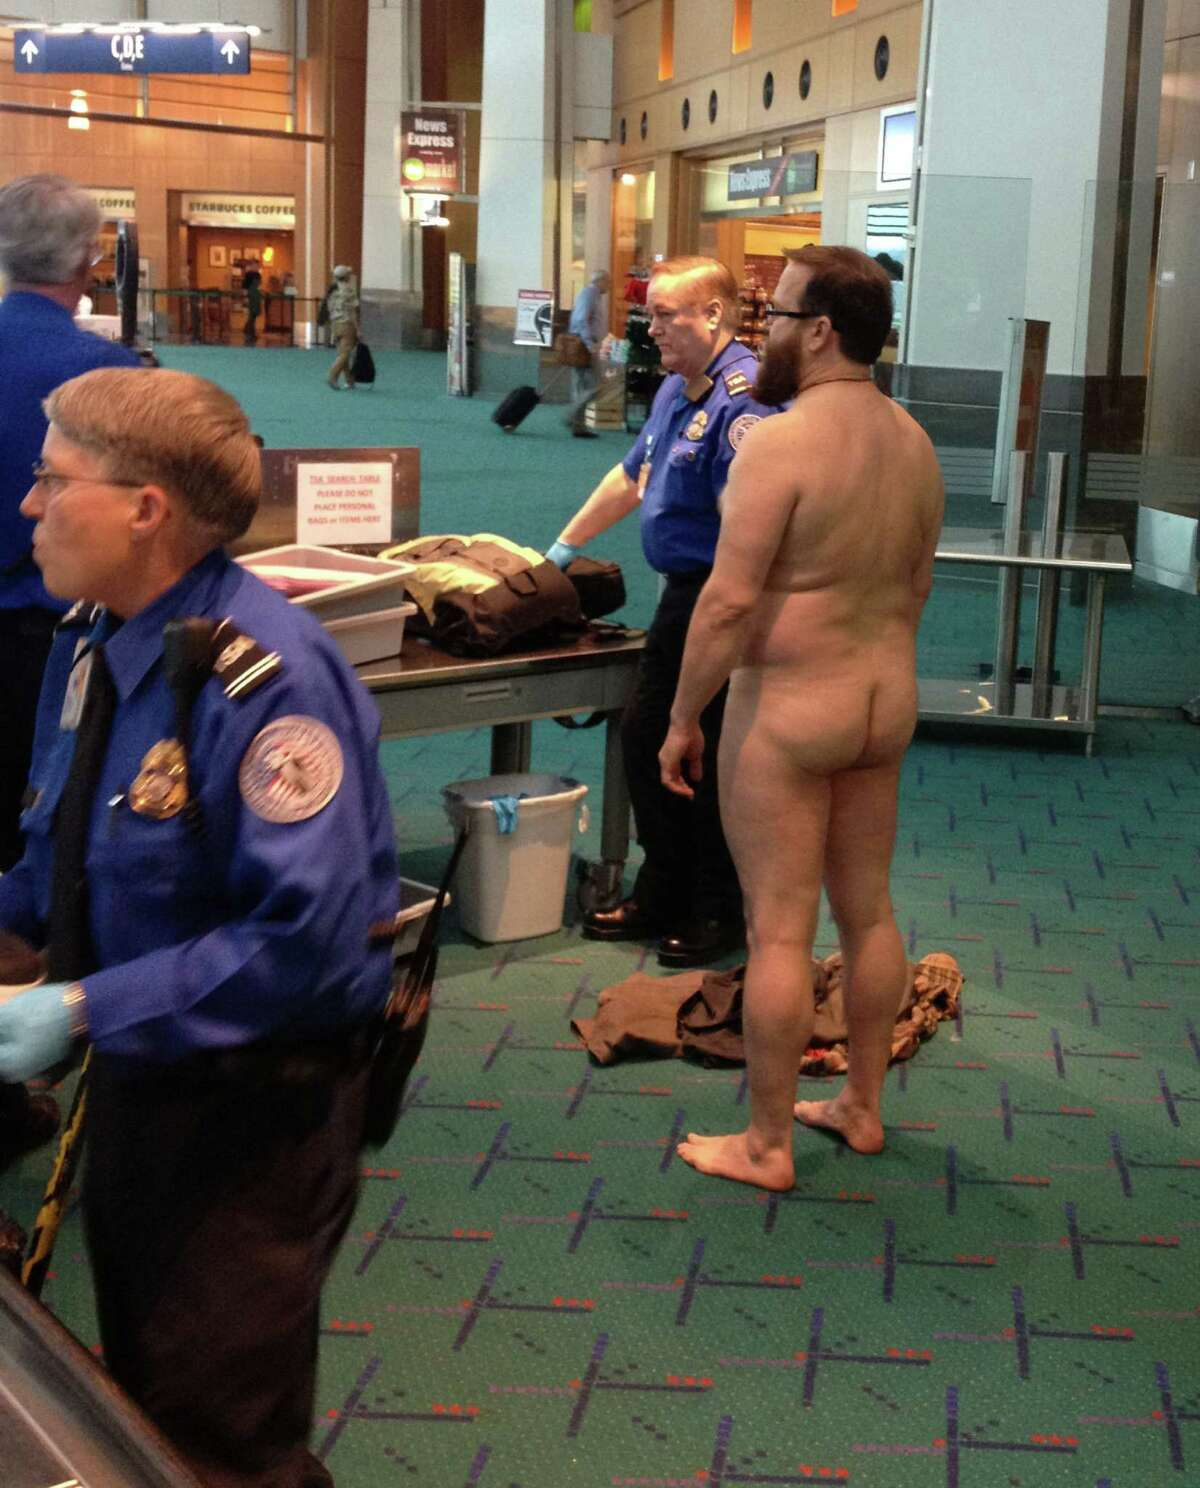 In this April 17, 2012, file photo, John E. Brennan stands naked after he stripped down while going through a security screening area at Portland International Airport, as a protest against airport security procedures. Brennan faces a $1,000 federal fine, an administrative hearing next week and he expects to lose. But he plans to press his free-speech argument into the federal courts. He says he wants more effective security checks that aren't so invasive. (AP Photo/Brian Reilly, File)